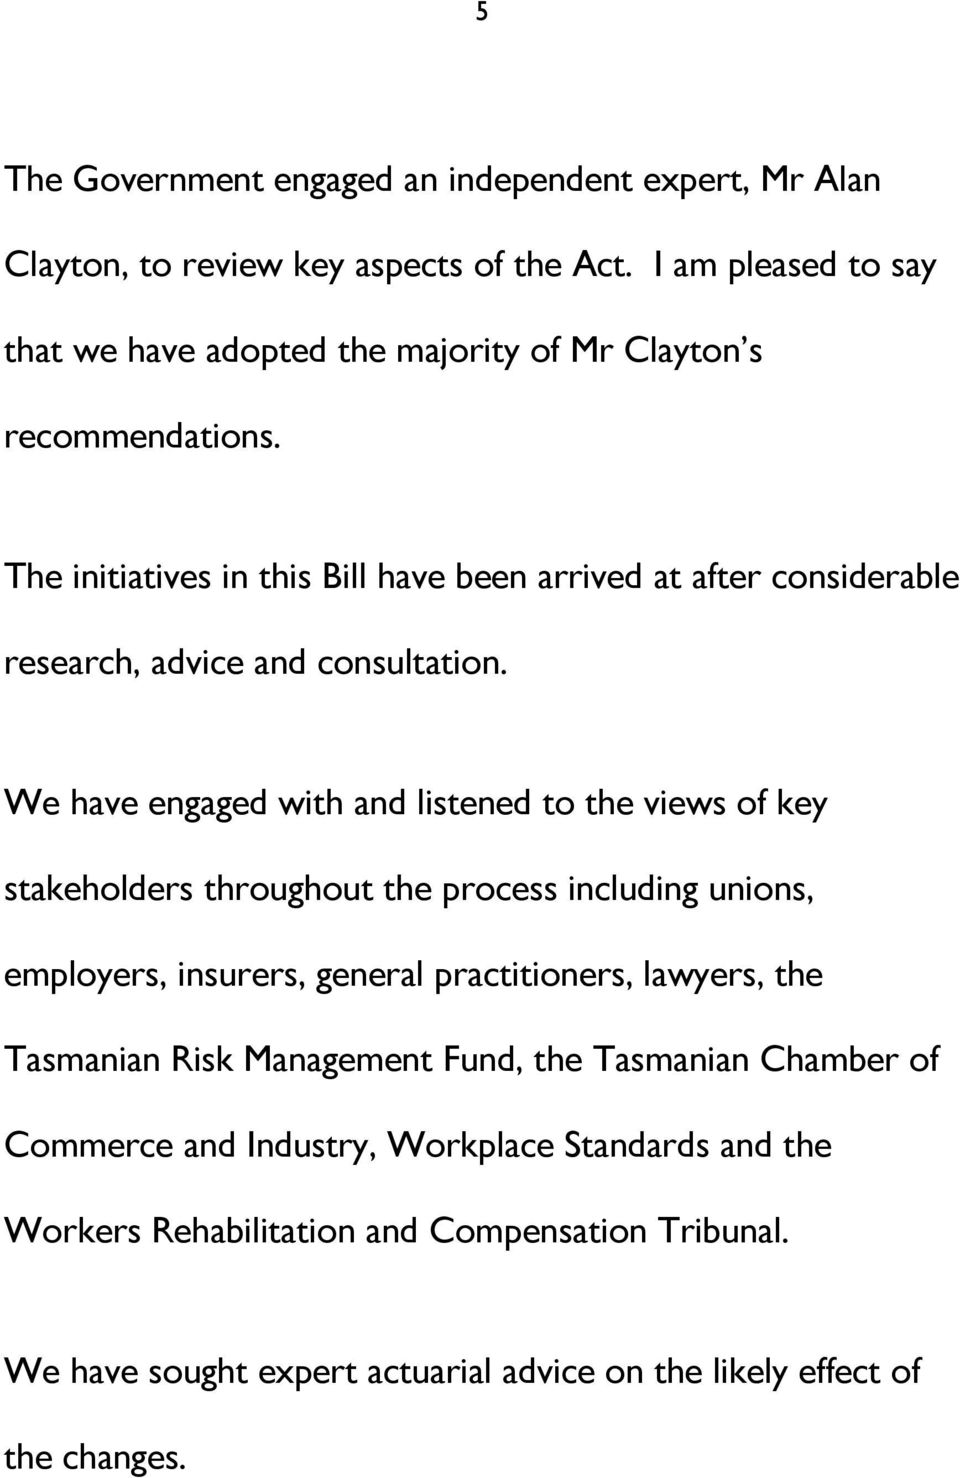 The initiatives in this Bill have been arrived at after considerable research, advice and consultation.